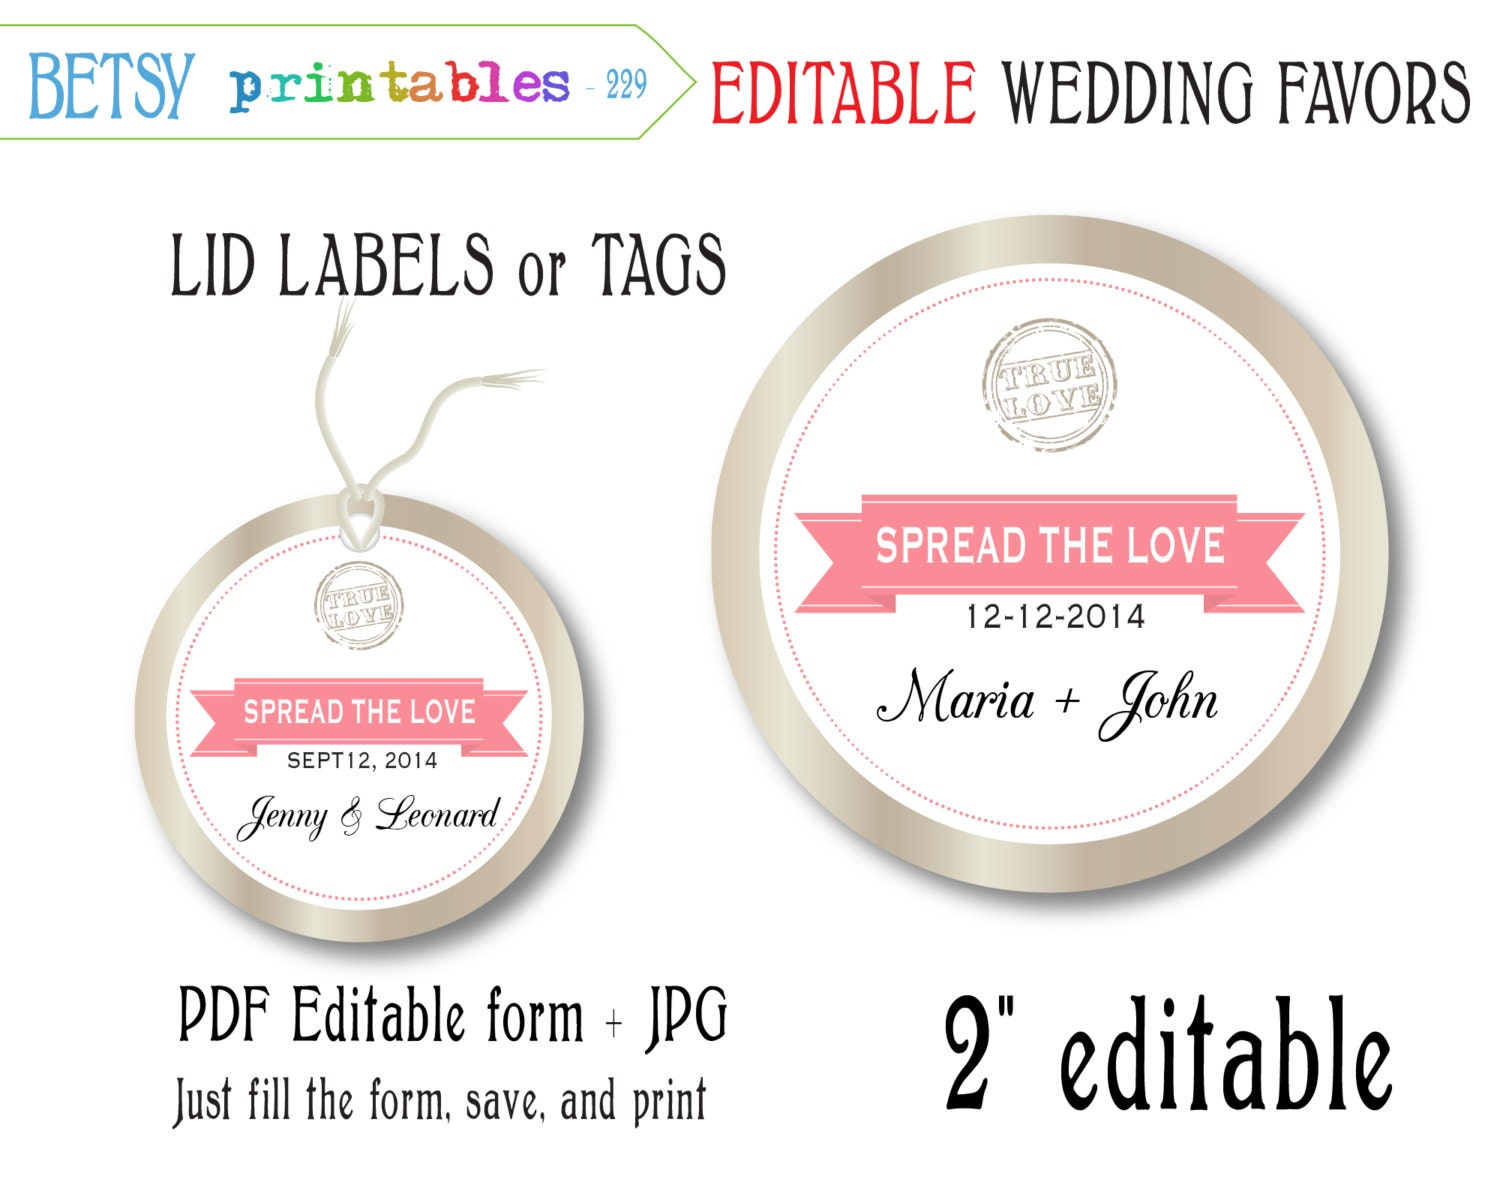 Free Printable Wedding Gift Tags: Mason Jar Wedding Favor, Editable Label, Editable Tags